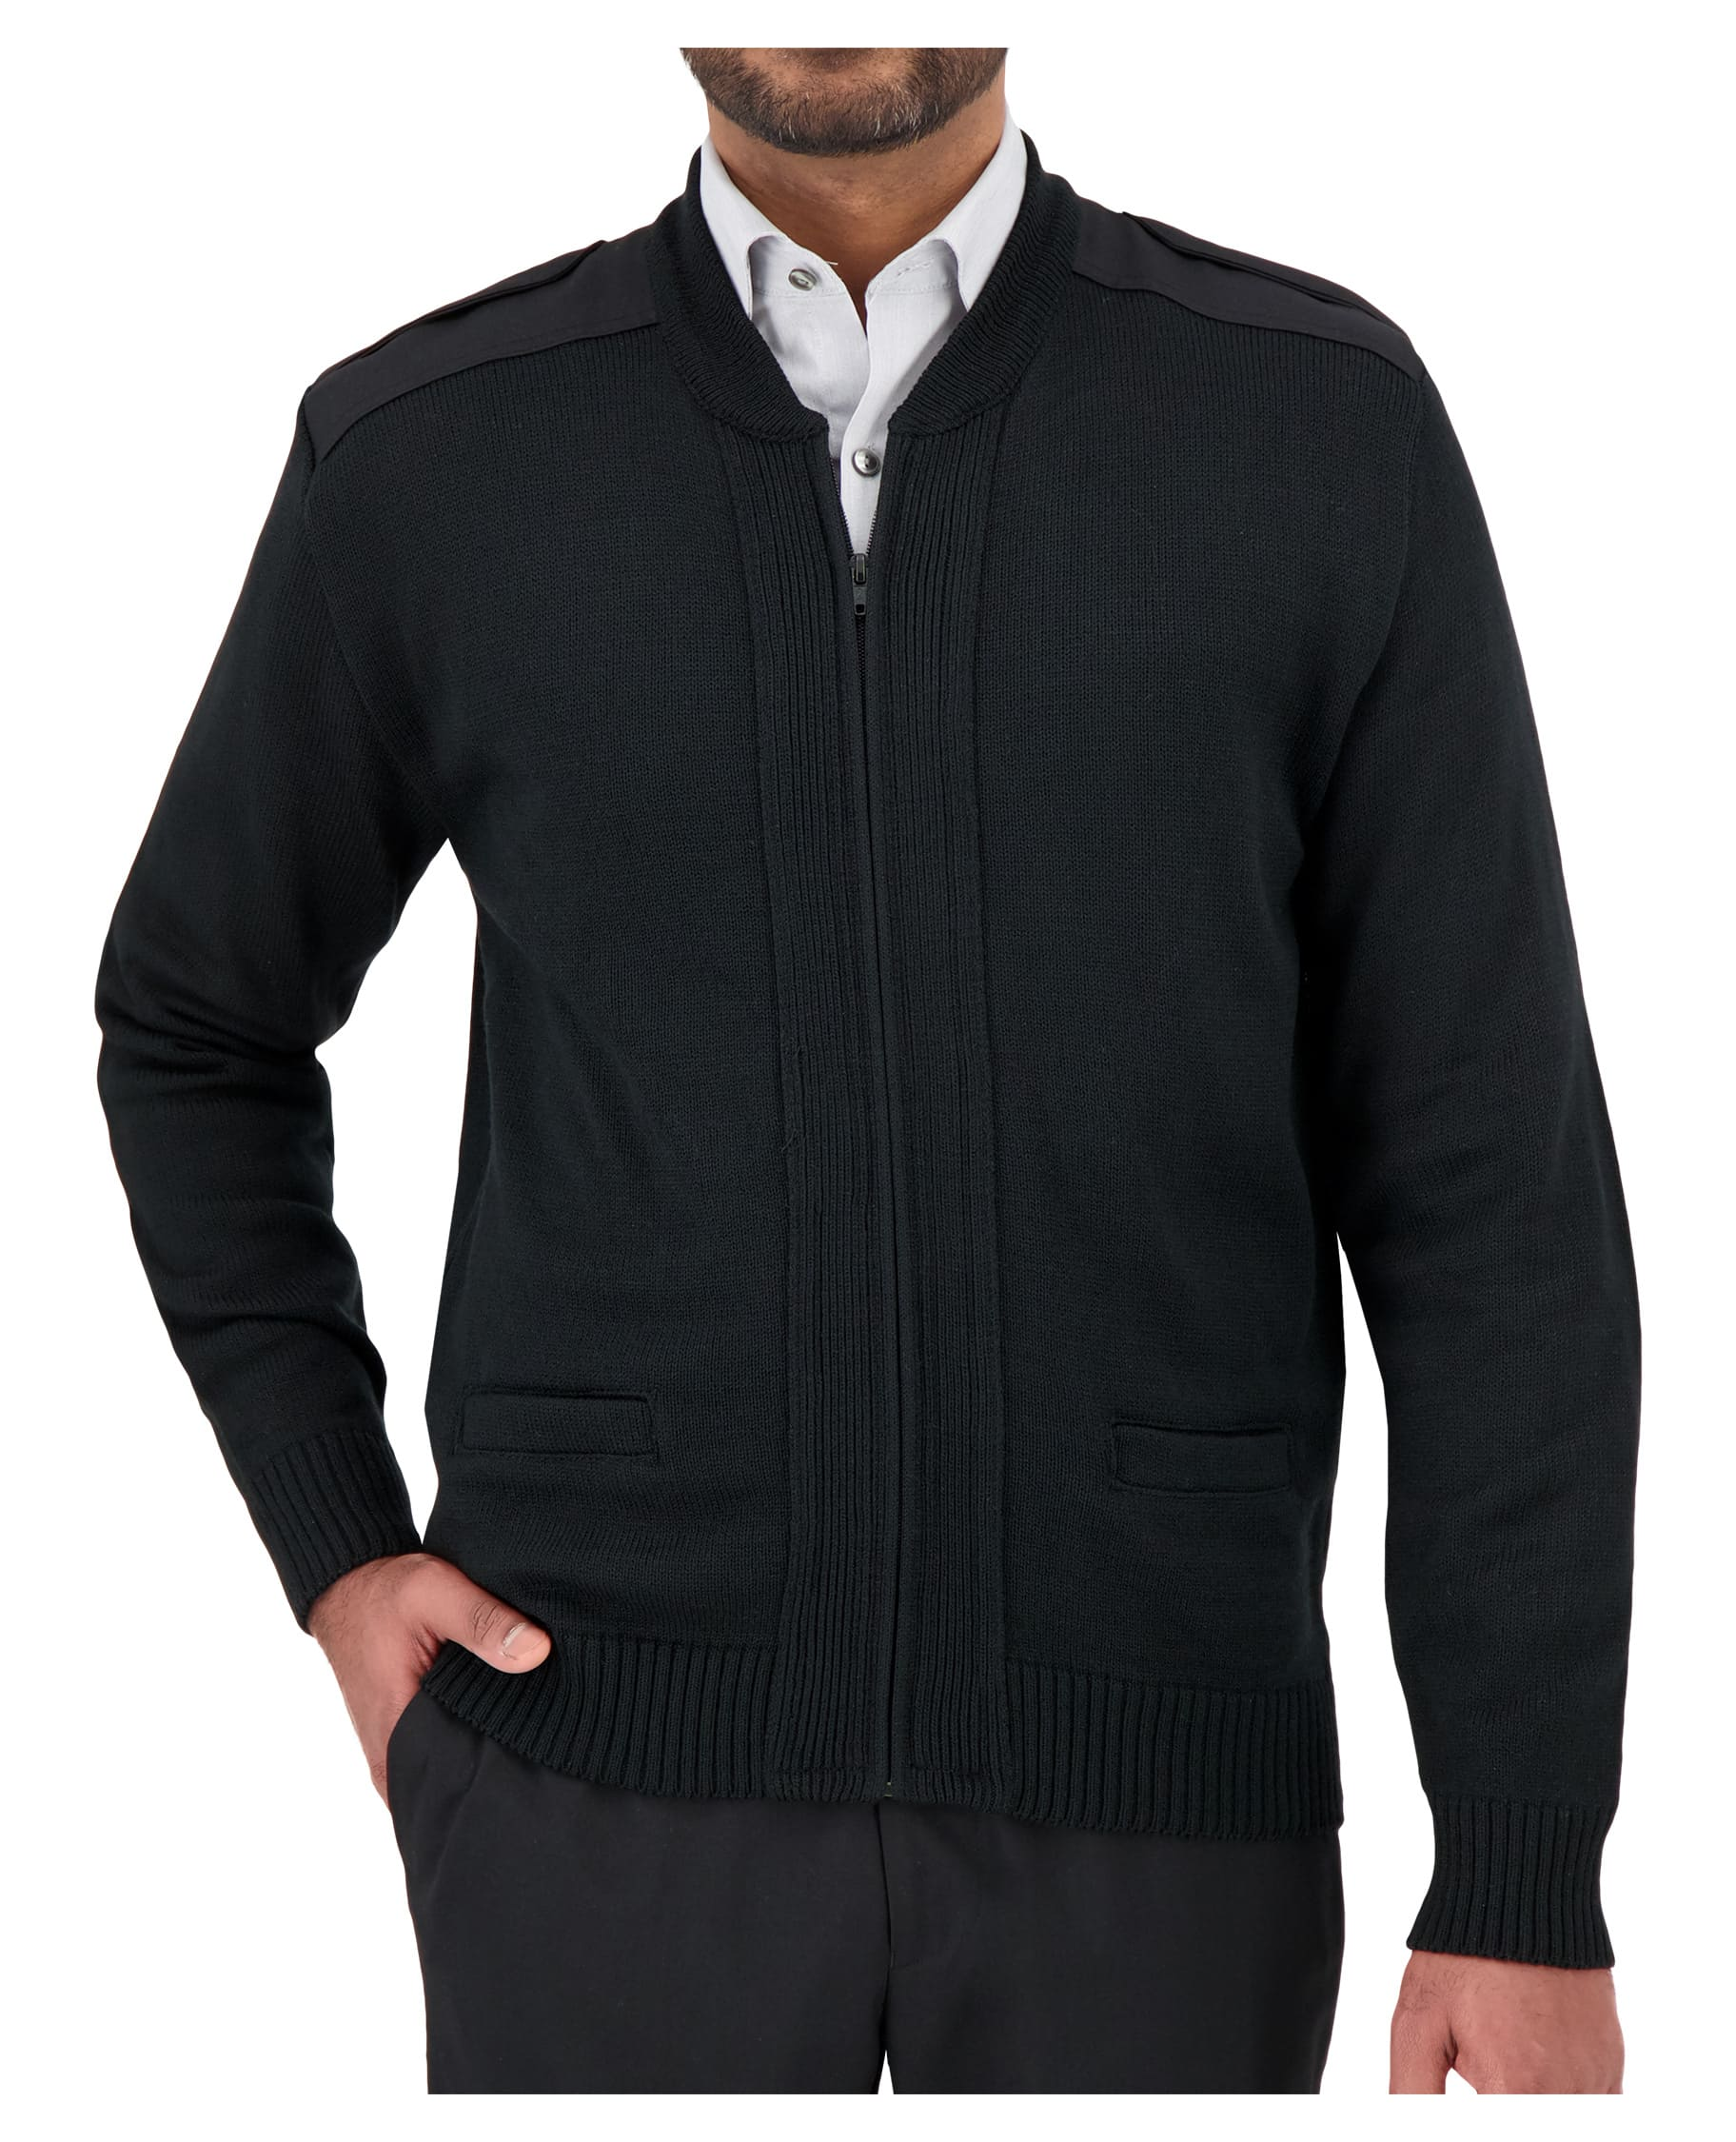 "Unisex Crew Neck Zip Front ""Commando"" with Pockets, Velcro Epaulets, Shoulder and Elbow Patches-Cobmex"